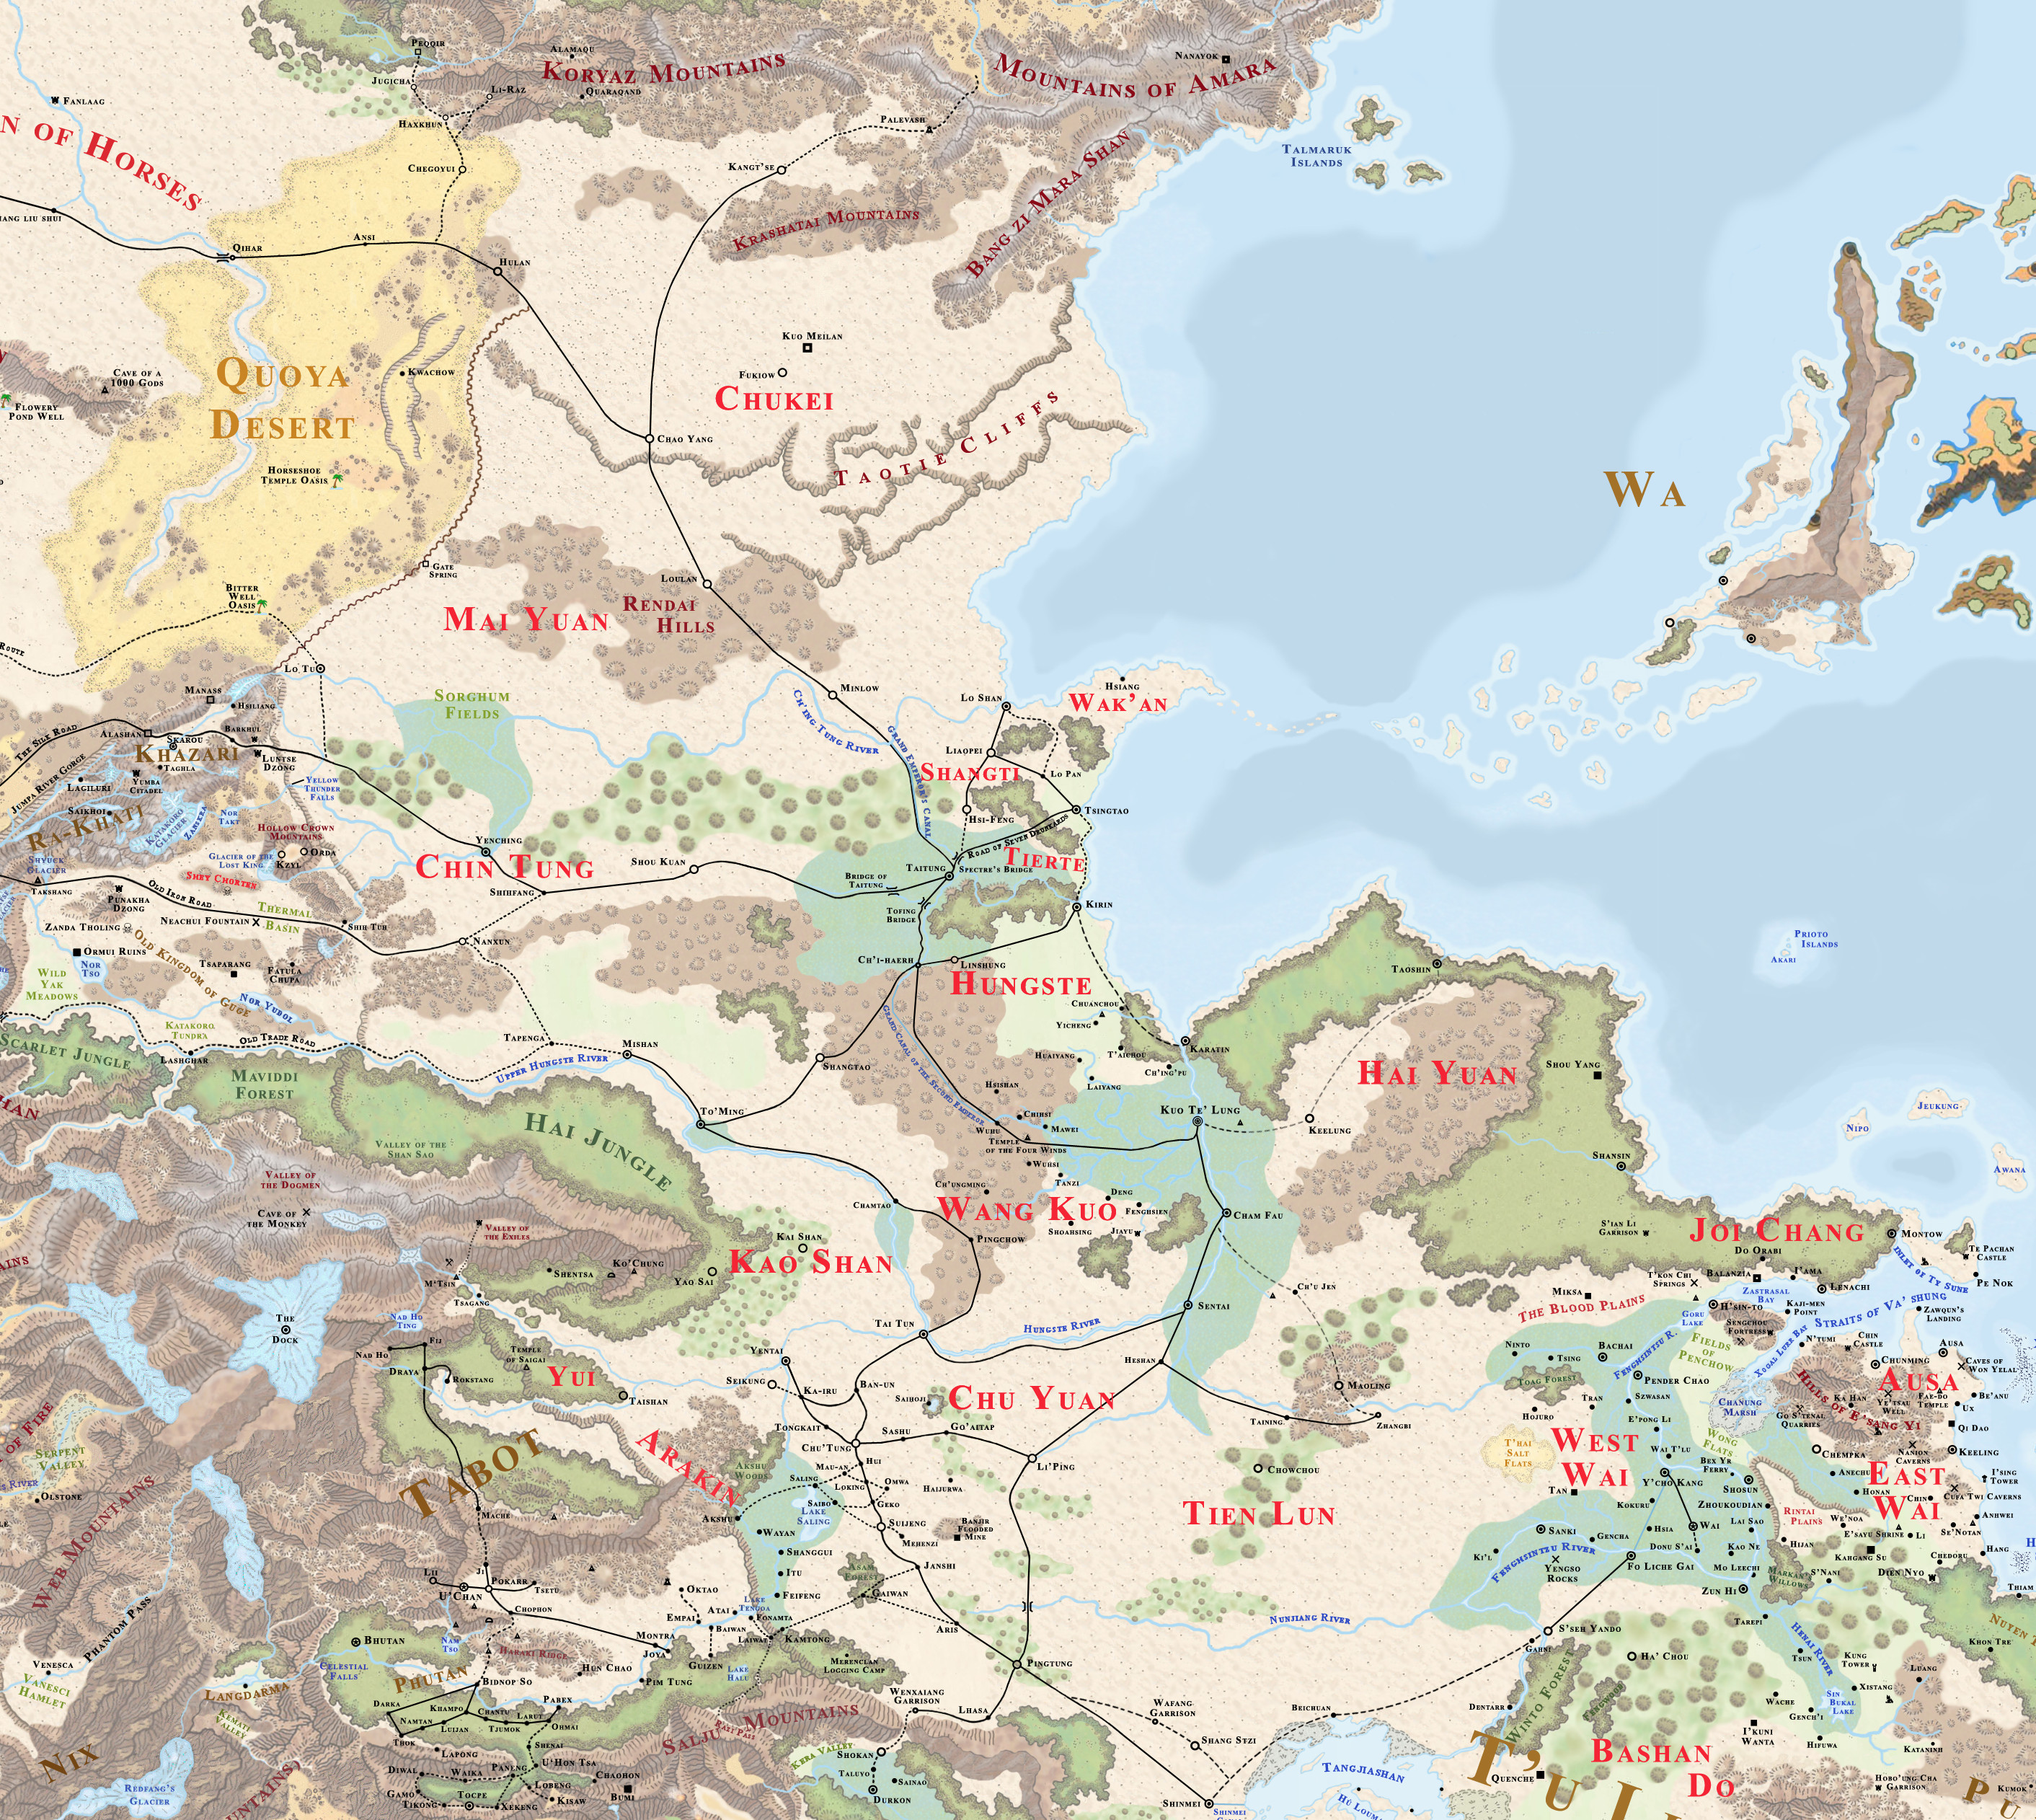 Kara tur forgotten realms wiki fandom powered by wikia the vast human empire of shou lung is undoubtedly the most powerful nation on the face of abeir toril the empire was started by a simple peasant known as gumiabroncs Image collections